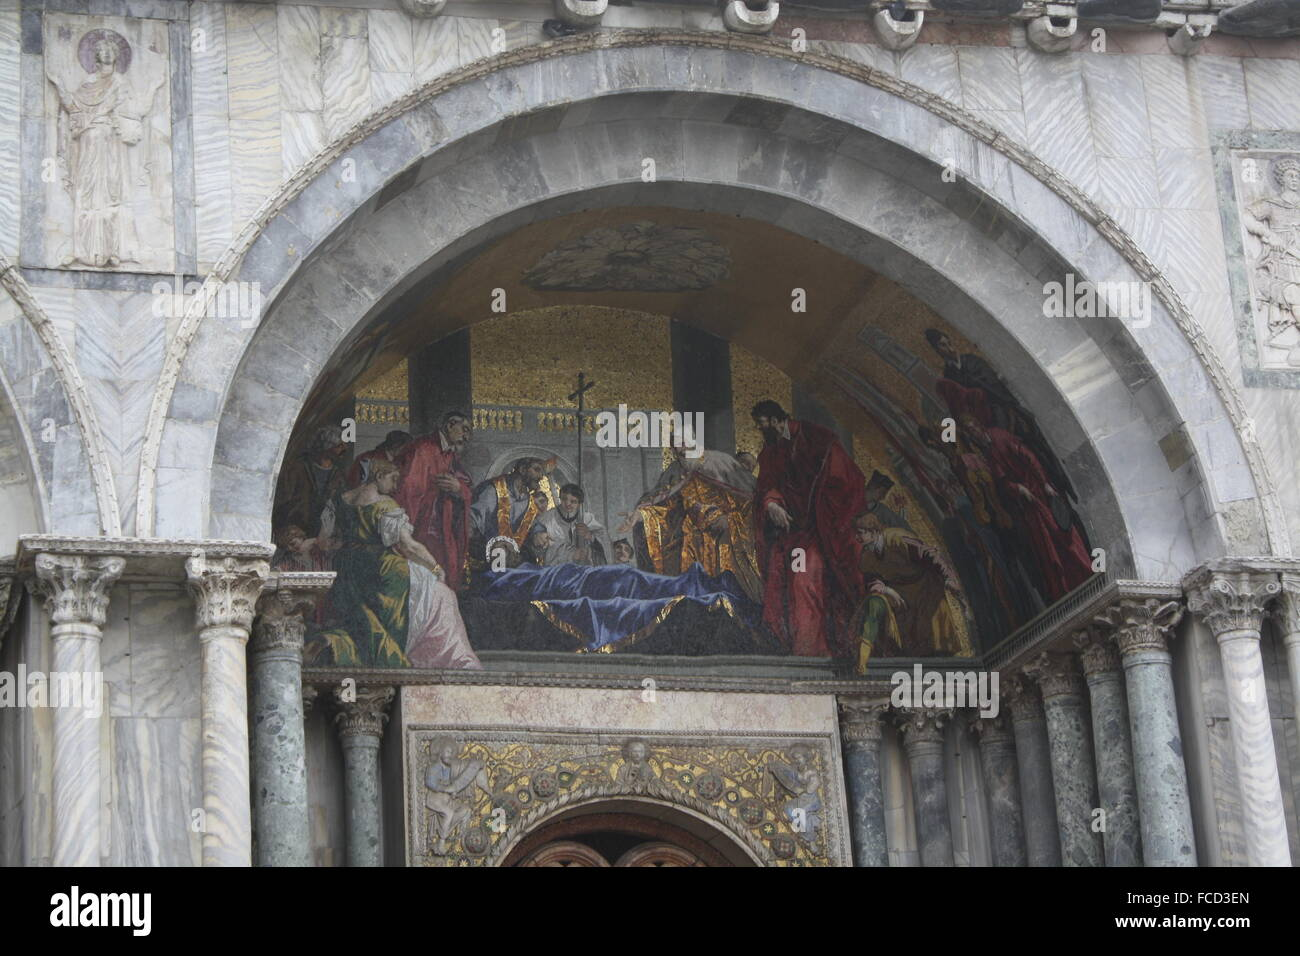 Painted Cope Above The Entrance - Stock Image